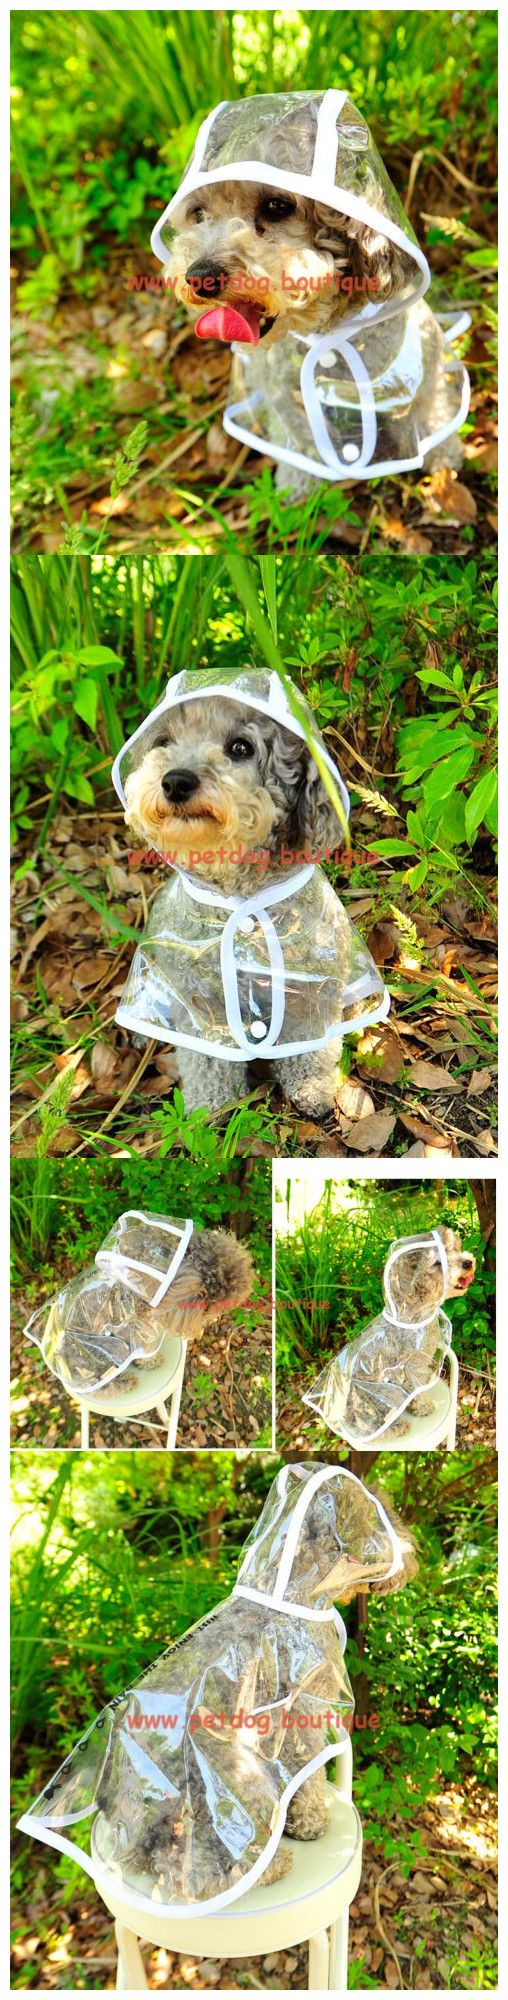 small dogs clothes and accessories rain coat puppy cooper